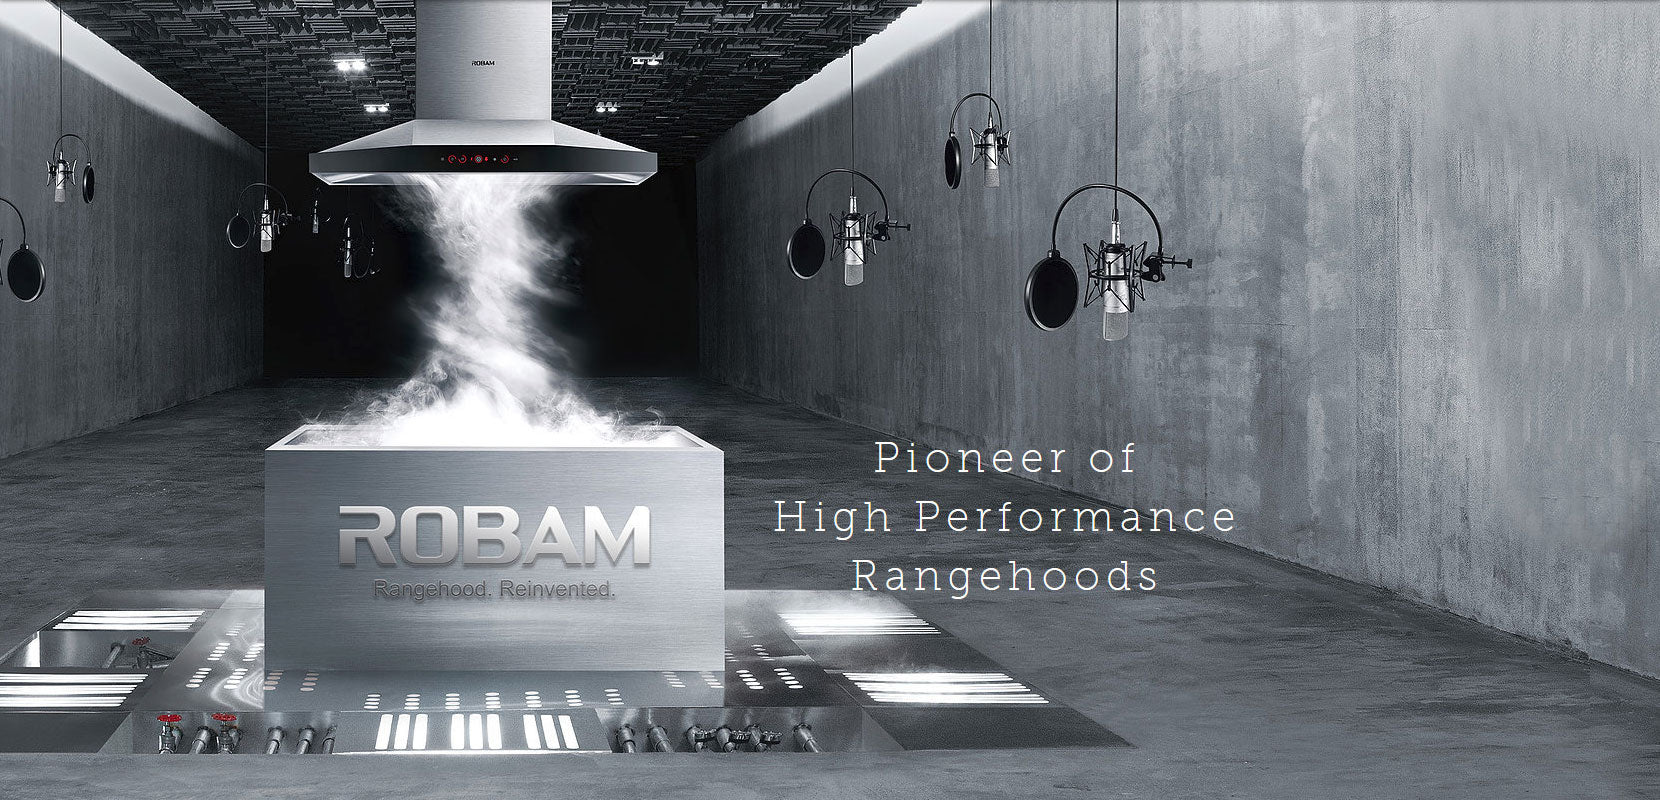 Pioneer of High Performance Rangehoods